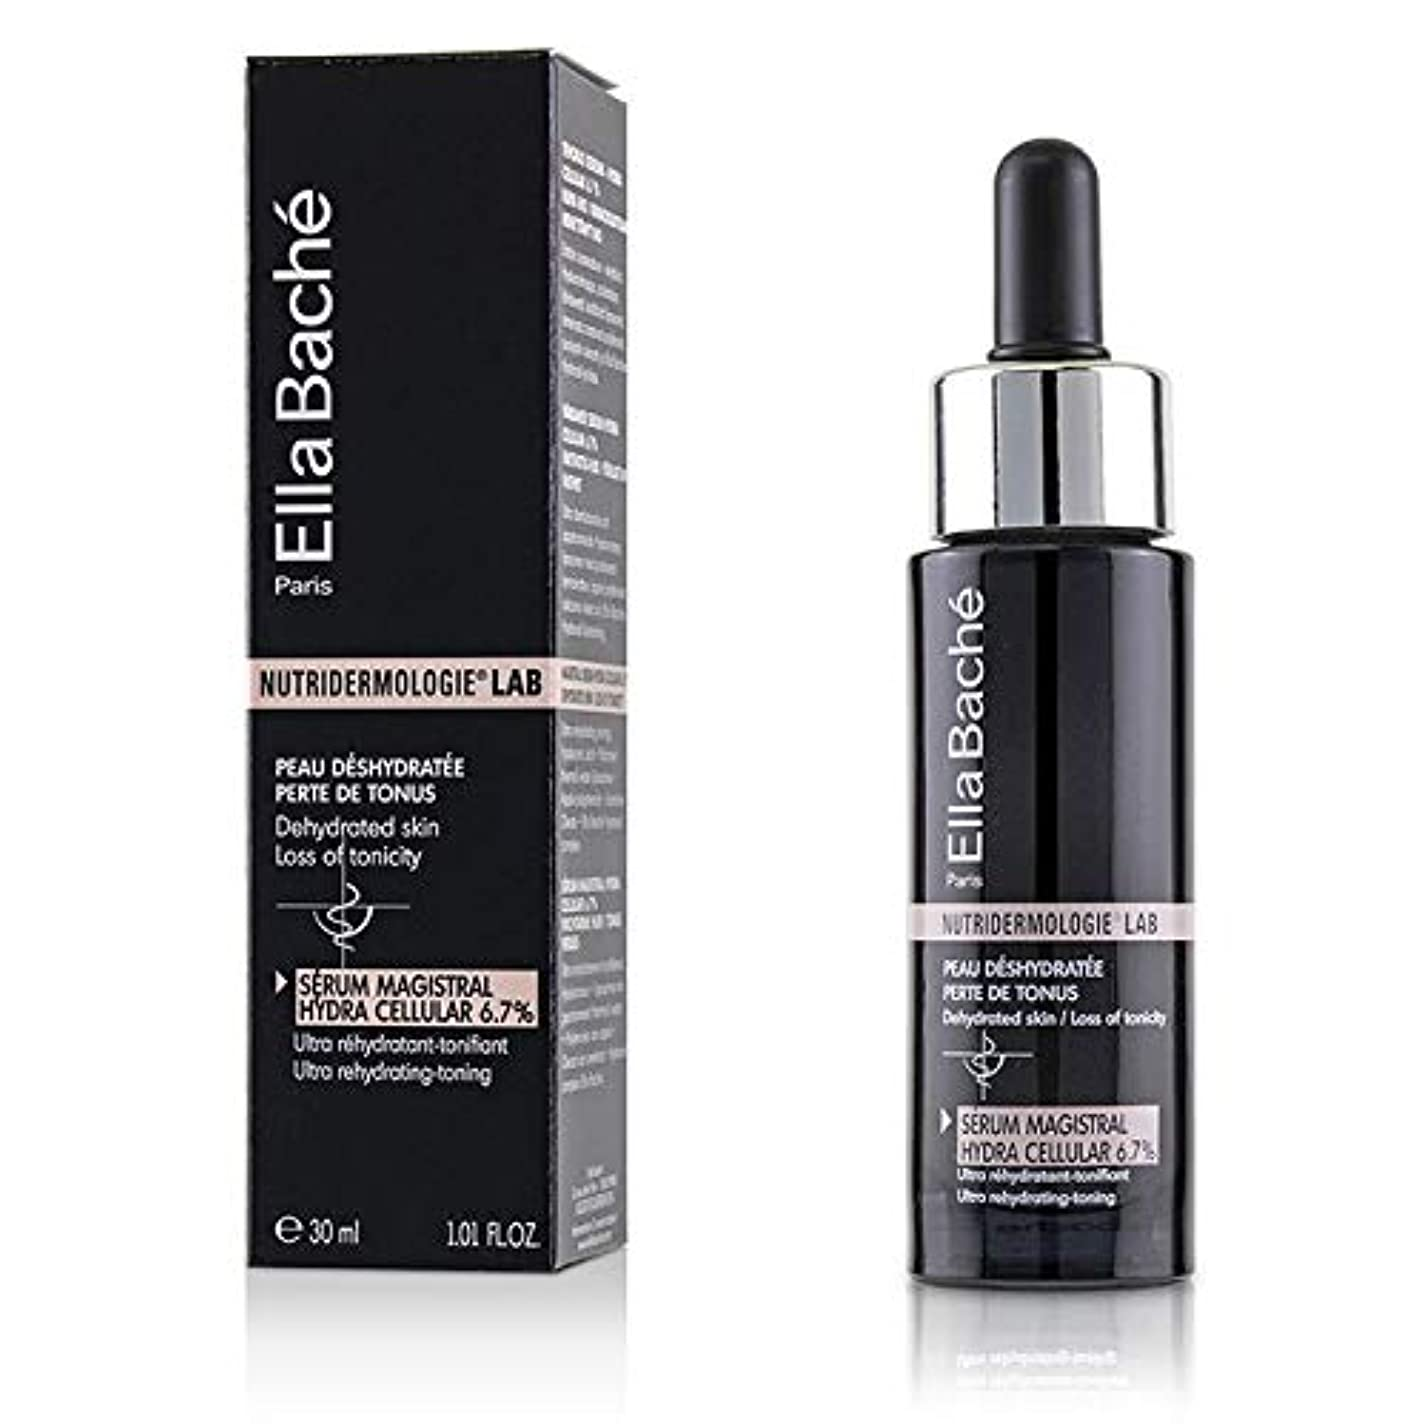 非公式整理する高潔なエラバシェ Nutridermologie Lab Serum Magistral Hydra Cellular 6.7% Ultra Rehydrating-Toning 30ml/1.01oz並行輸入品